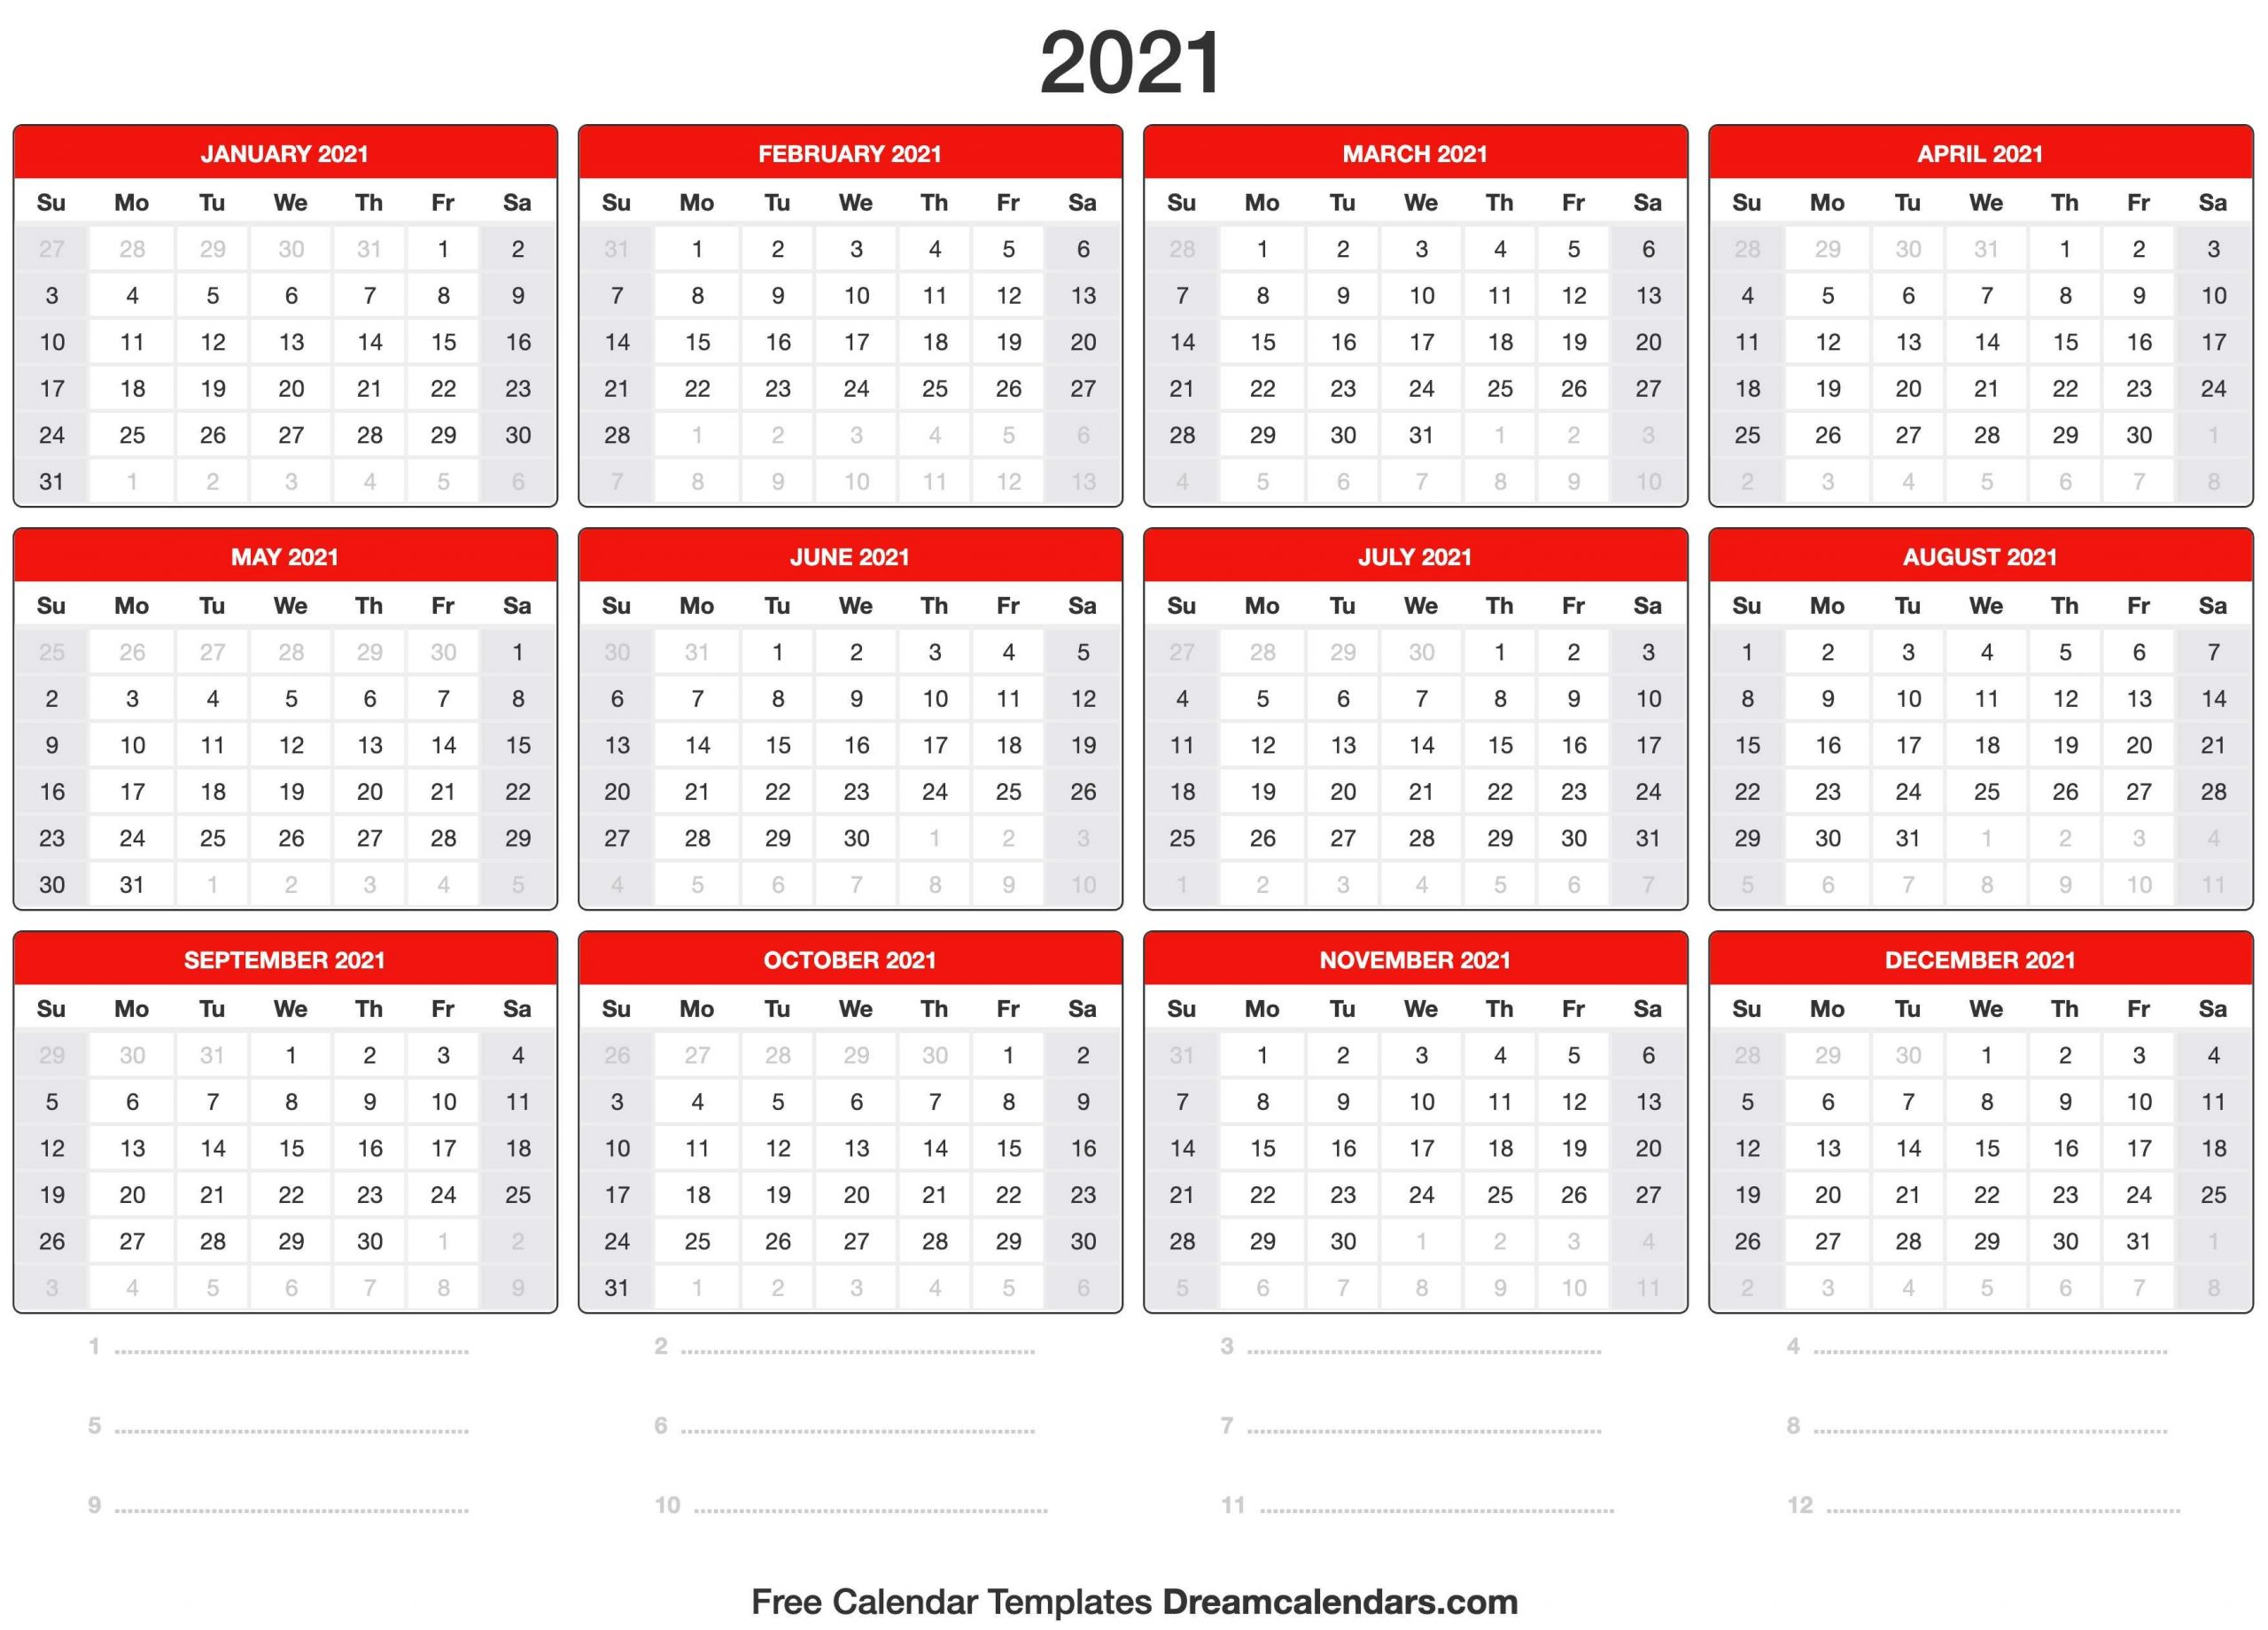 2021 Calendar Free Weekly Calendar Fillable With Times Starting At 6Am